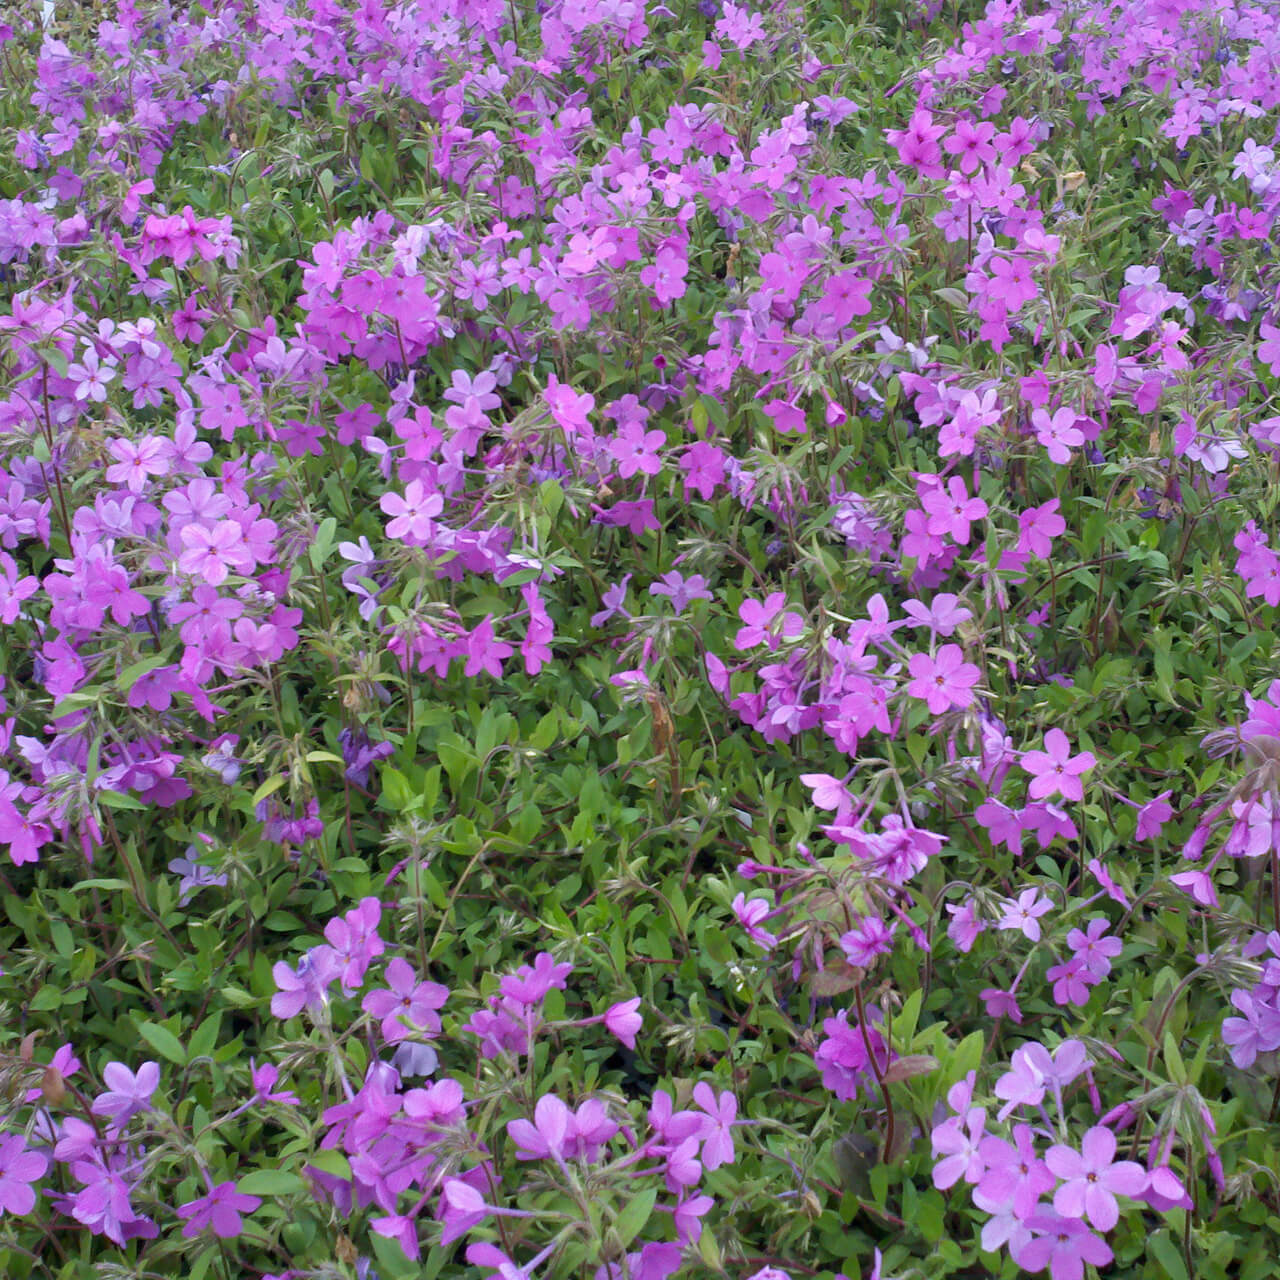 creeping phlox - Evergreen ground cover